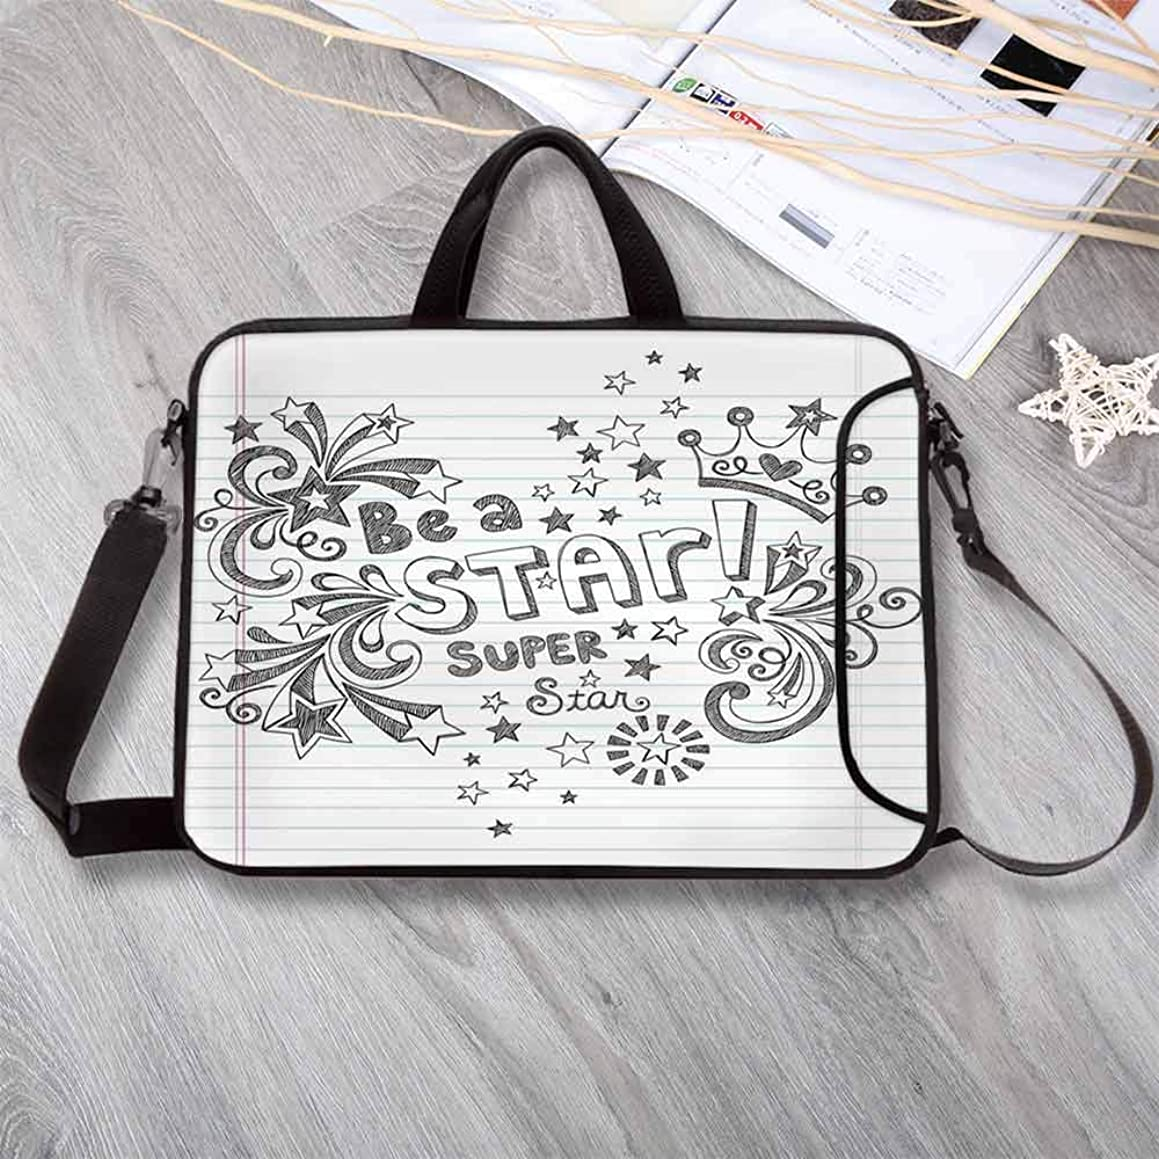 """Teen Room Decor Custom Neoprene Laptop Bag,Be A Super Star Phrase on Notebook Paper Backdrop with Stars Crown Print Laptop Bag for Men Women Students,8.7""""L x 11""""W x 0.8""""H"""